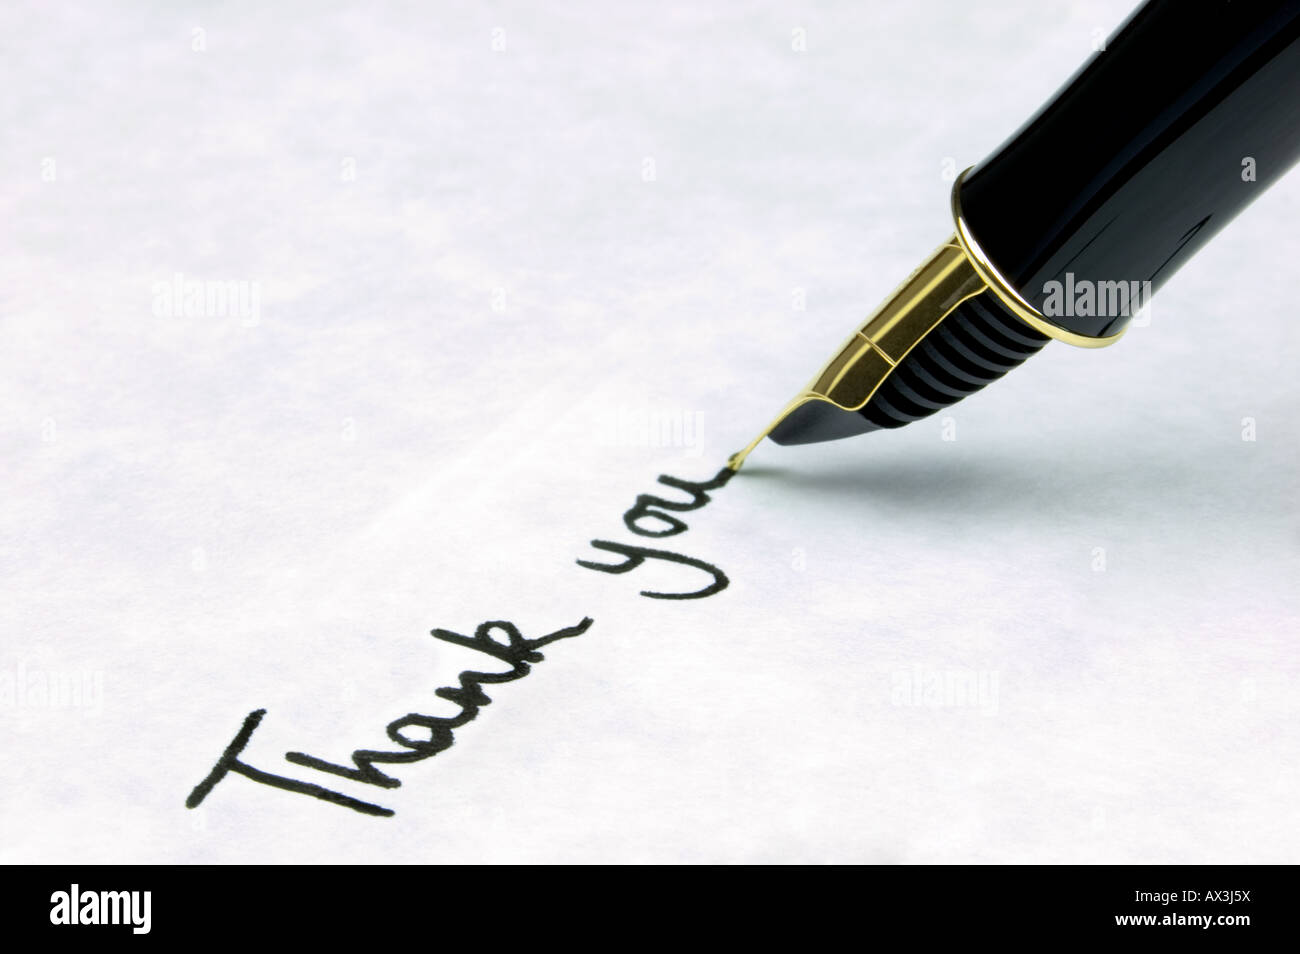 Thank You written on watermarked textured paper using a gold nibbed fountain pen Focal point is on the text - Stock Image